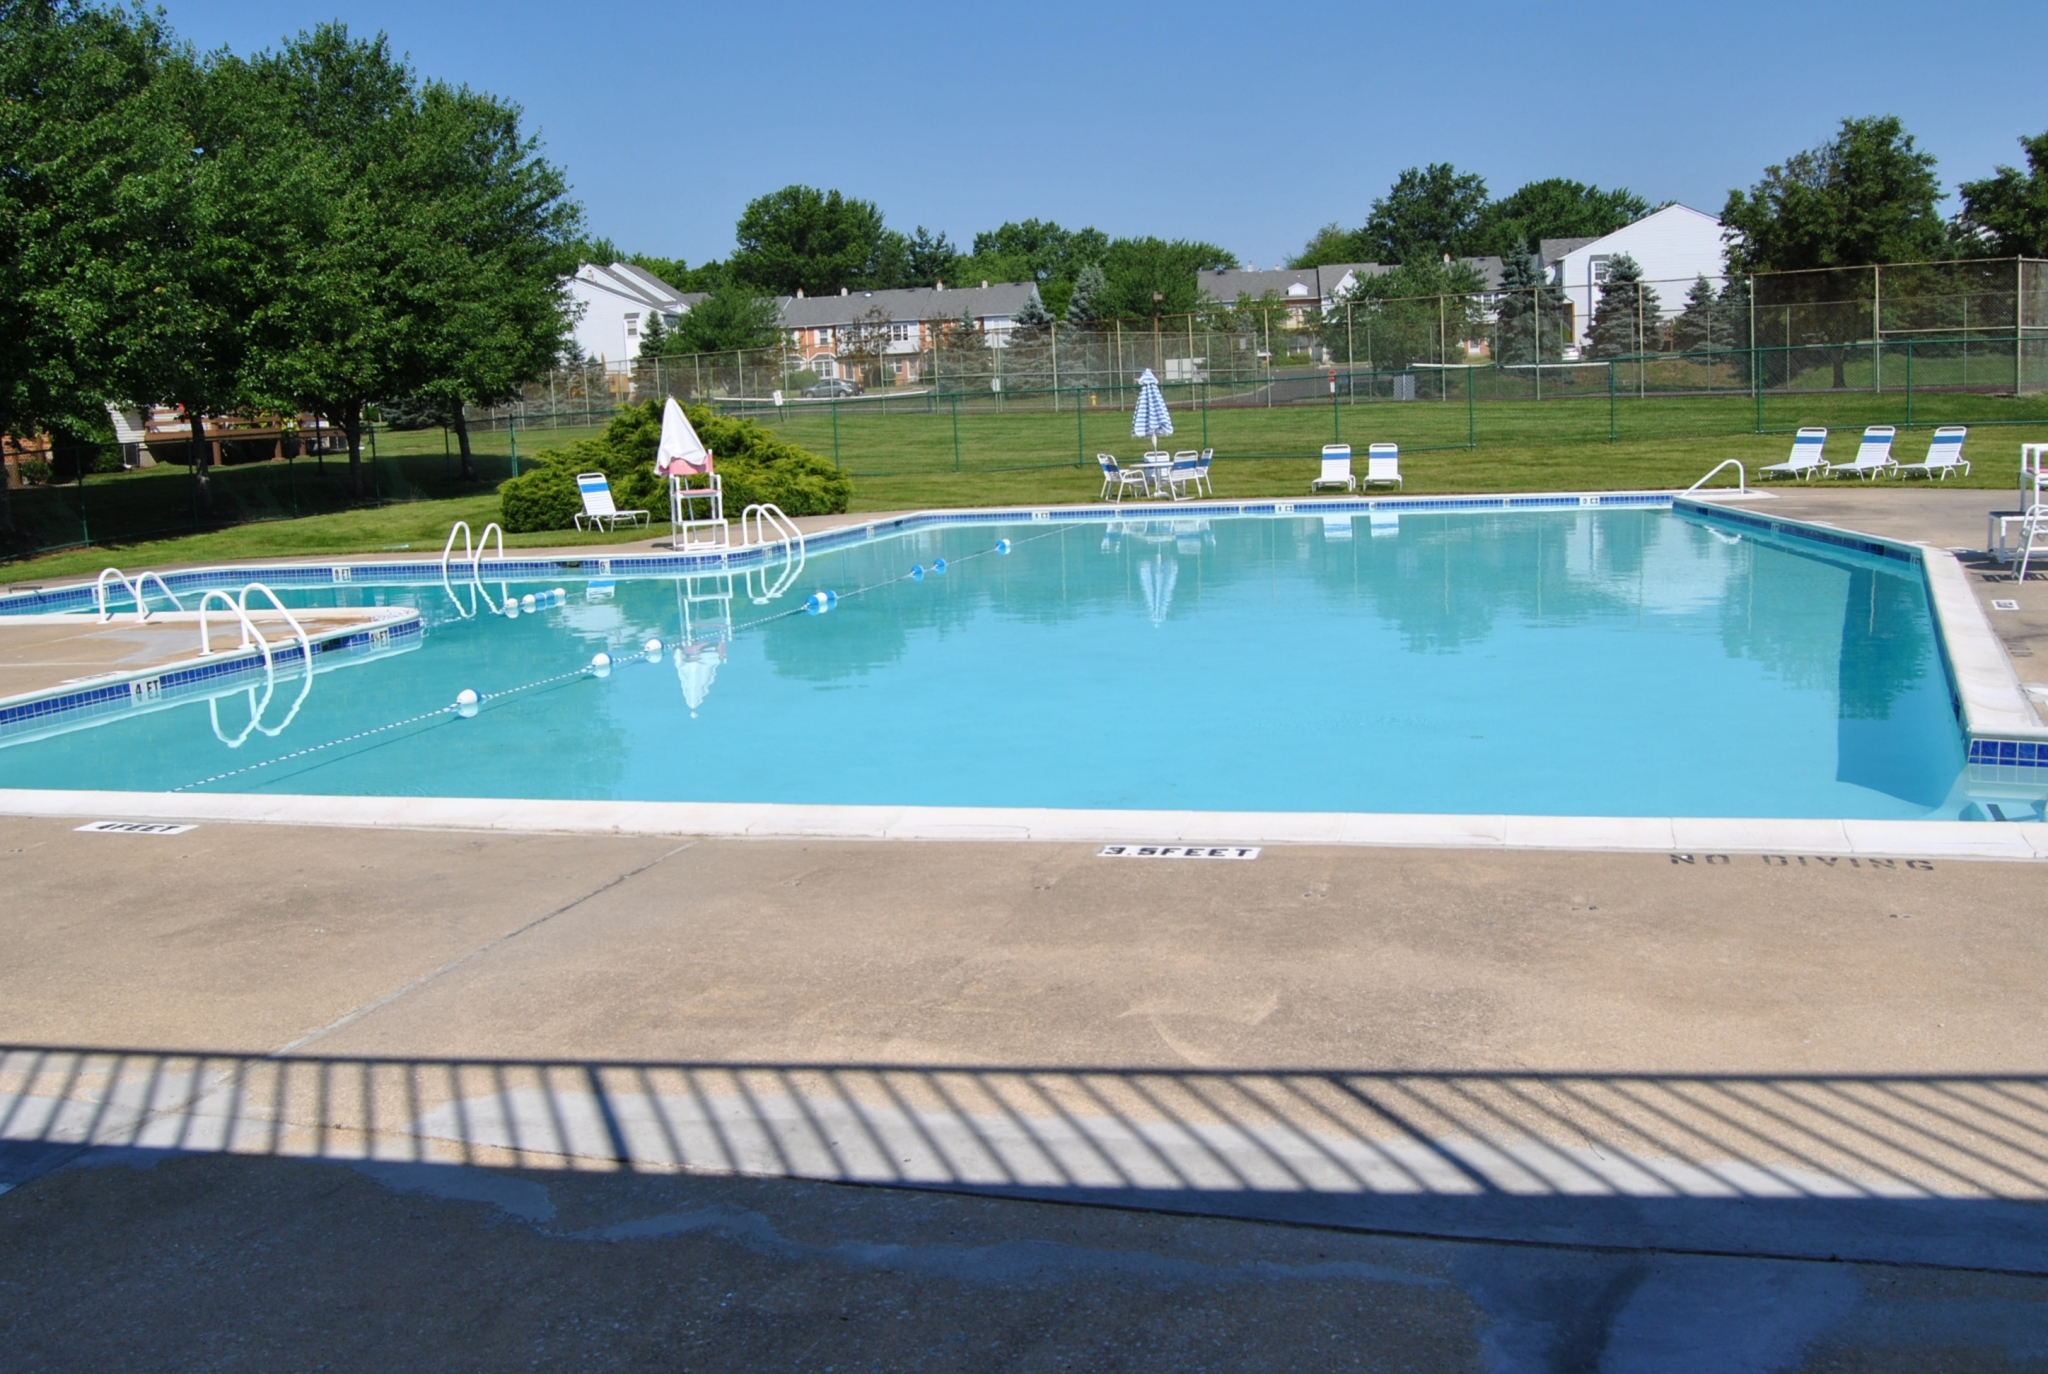 Sparkling Pool | Apartments for rent in Norristown, PA | Westover Village Apartments